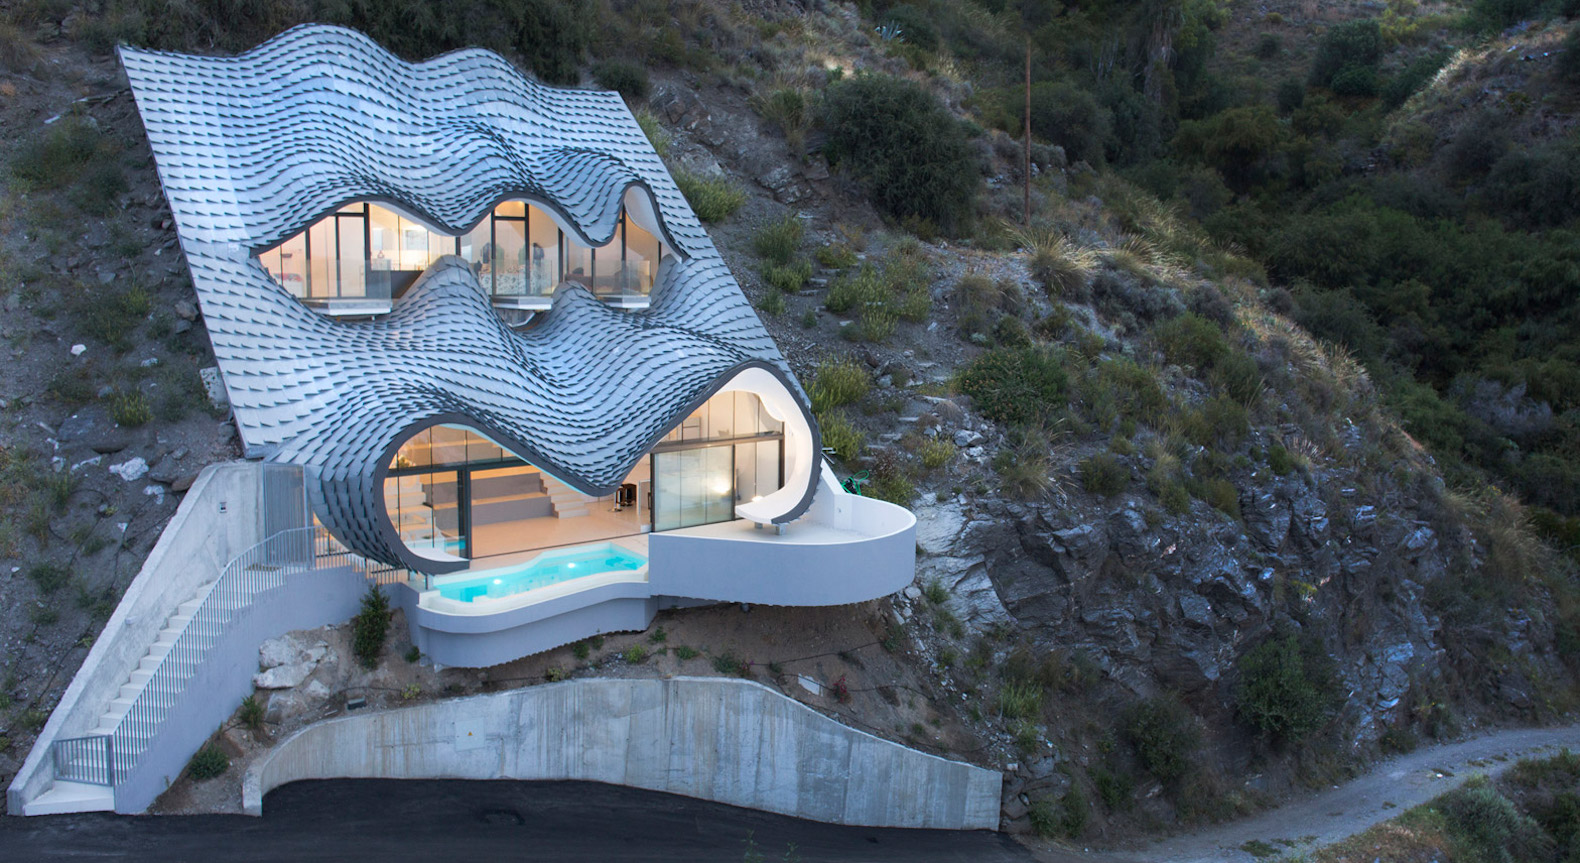 Amazing Dragon Inspired Cliff House In Spain Uses The Earth To Stay Cool